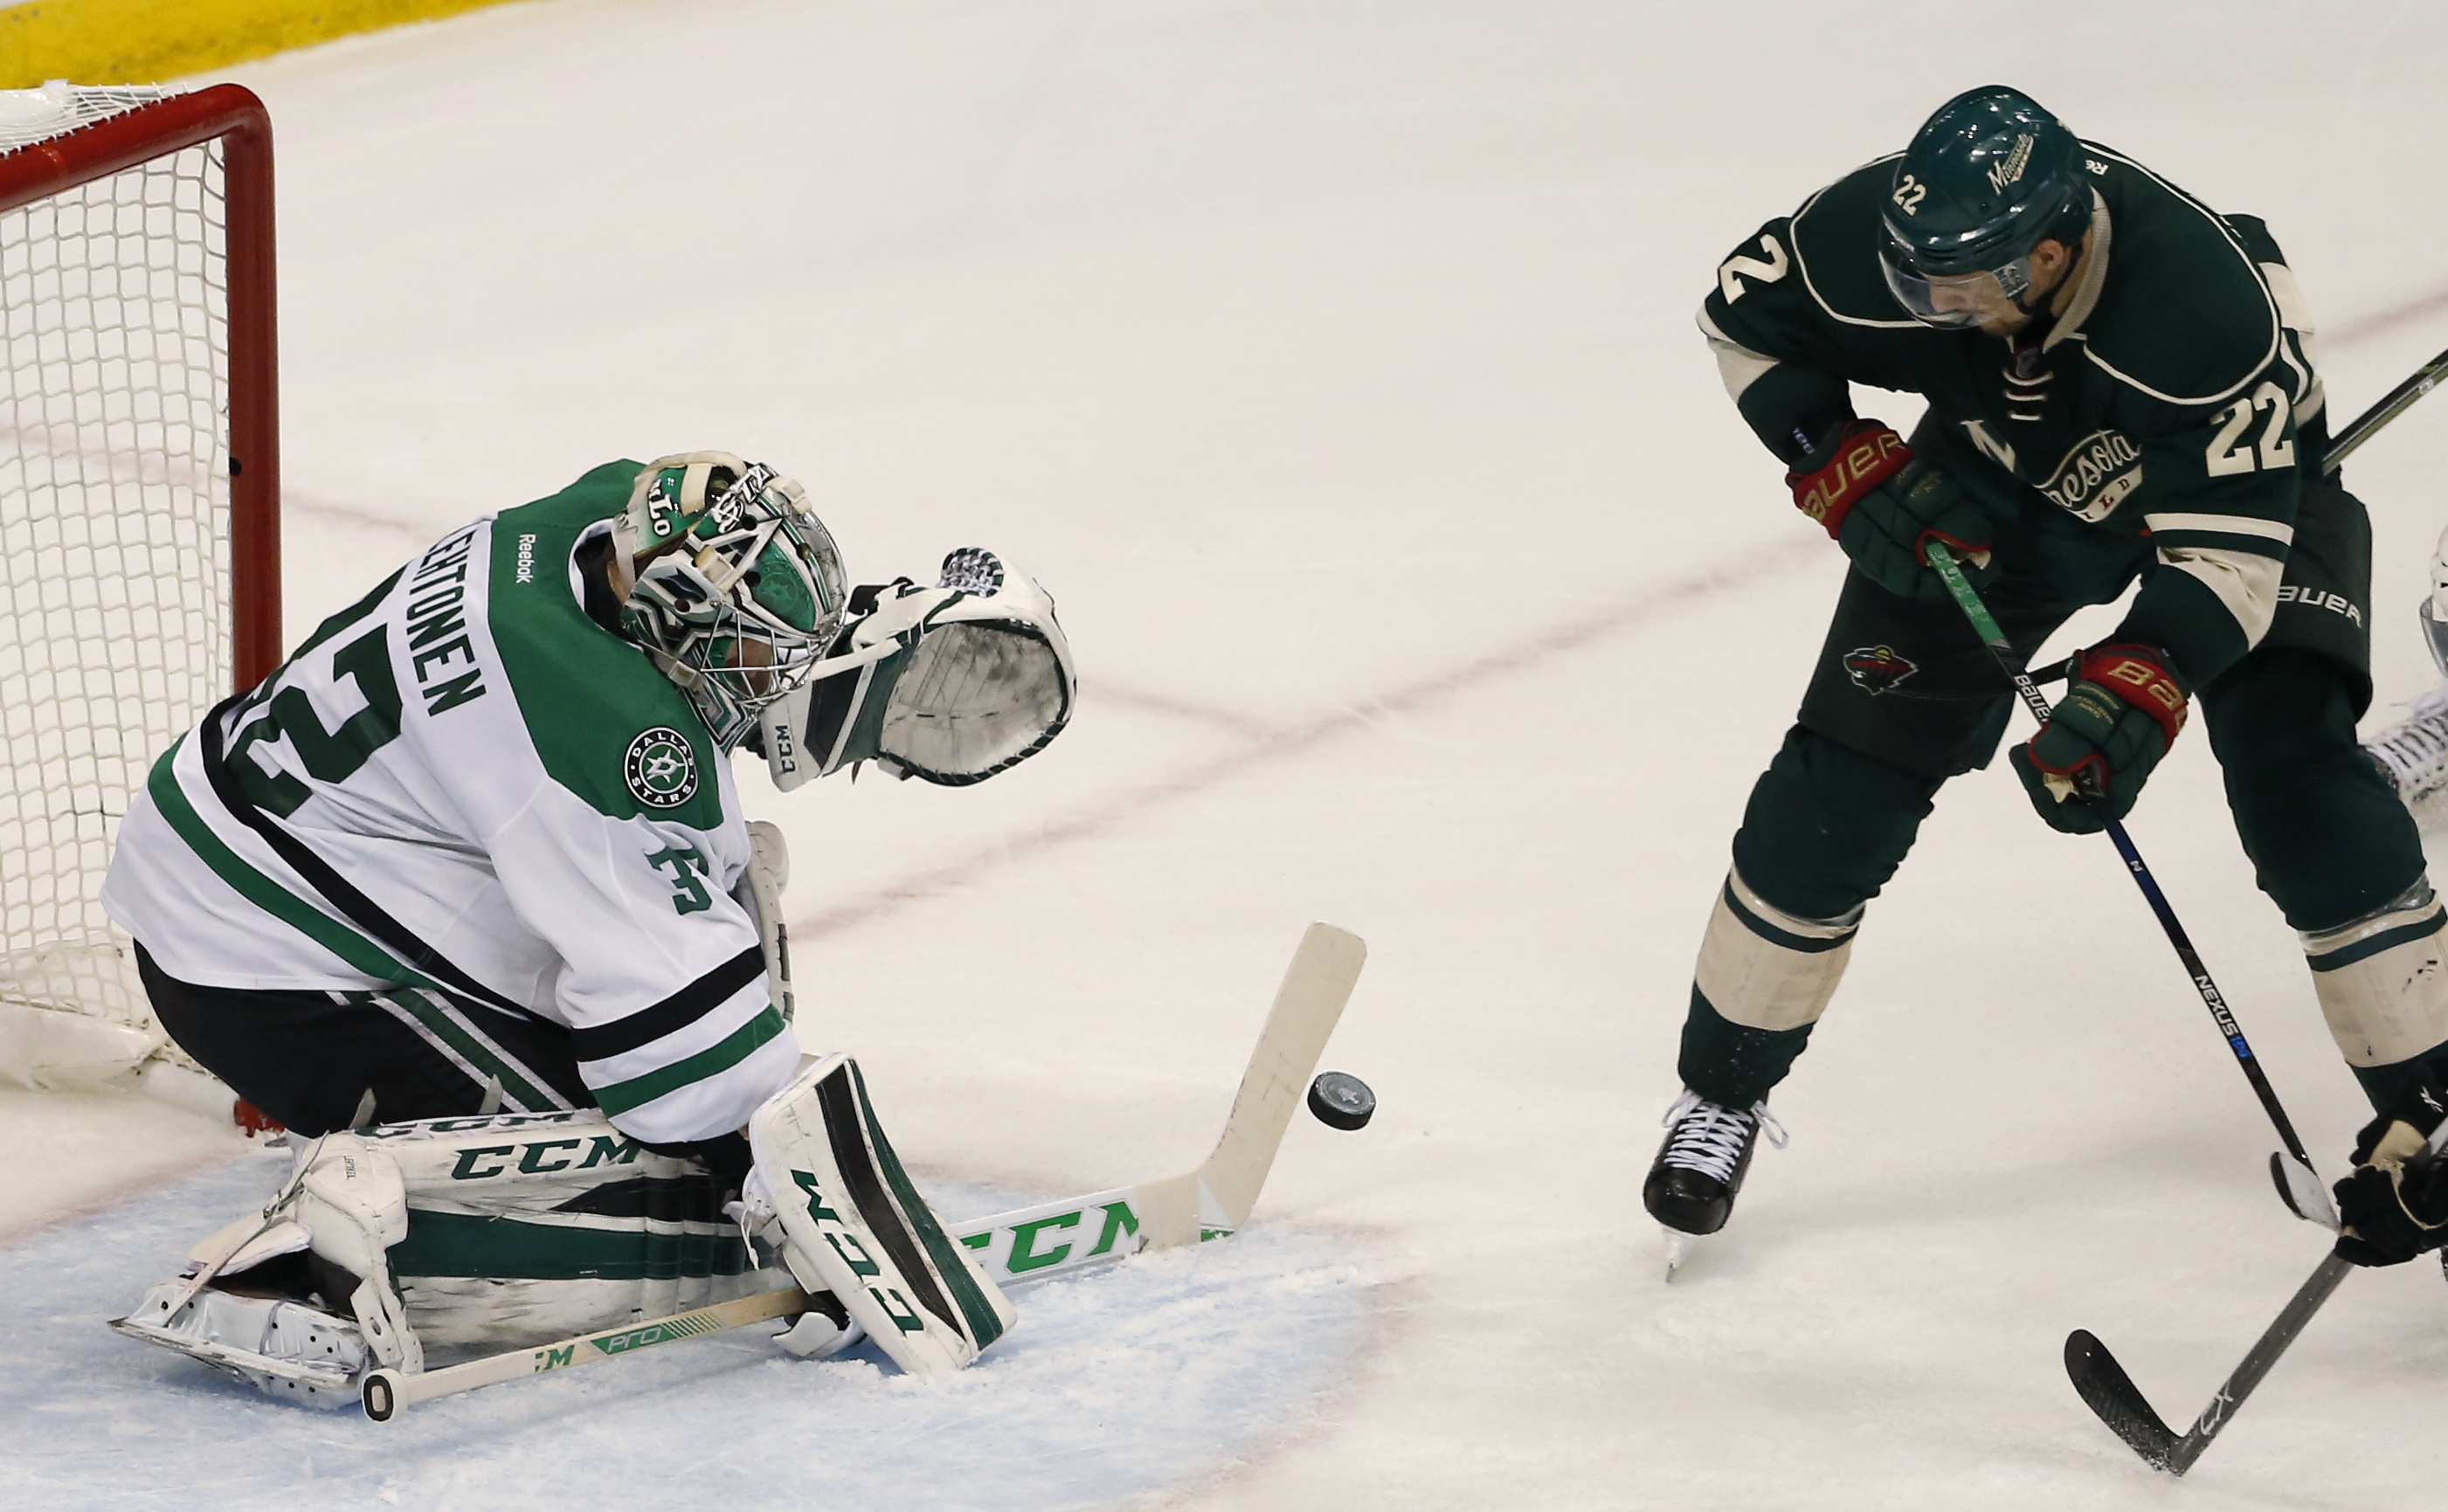 Dallas Stars goalie Kari Lehtonen (32) deflects a shot by Minnesota Wild right wing Nino Niederreiter (22) during the second period of Game 3 in the first round of the NHL Stanley Cup playoffs in St. Paul, Minn., Monday, April 18, 2016. (AP Photo/Ann Heis